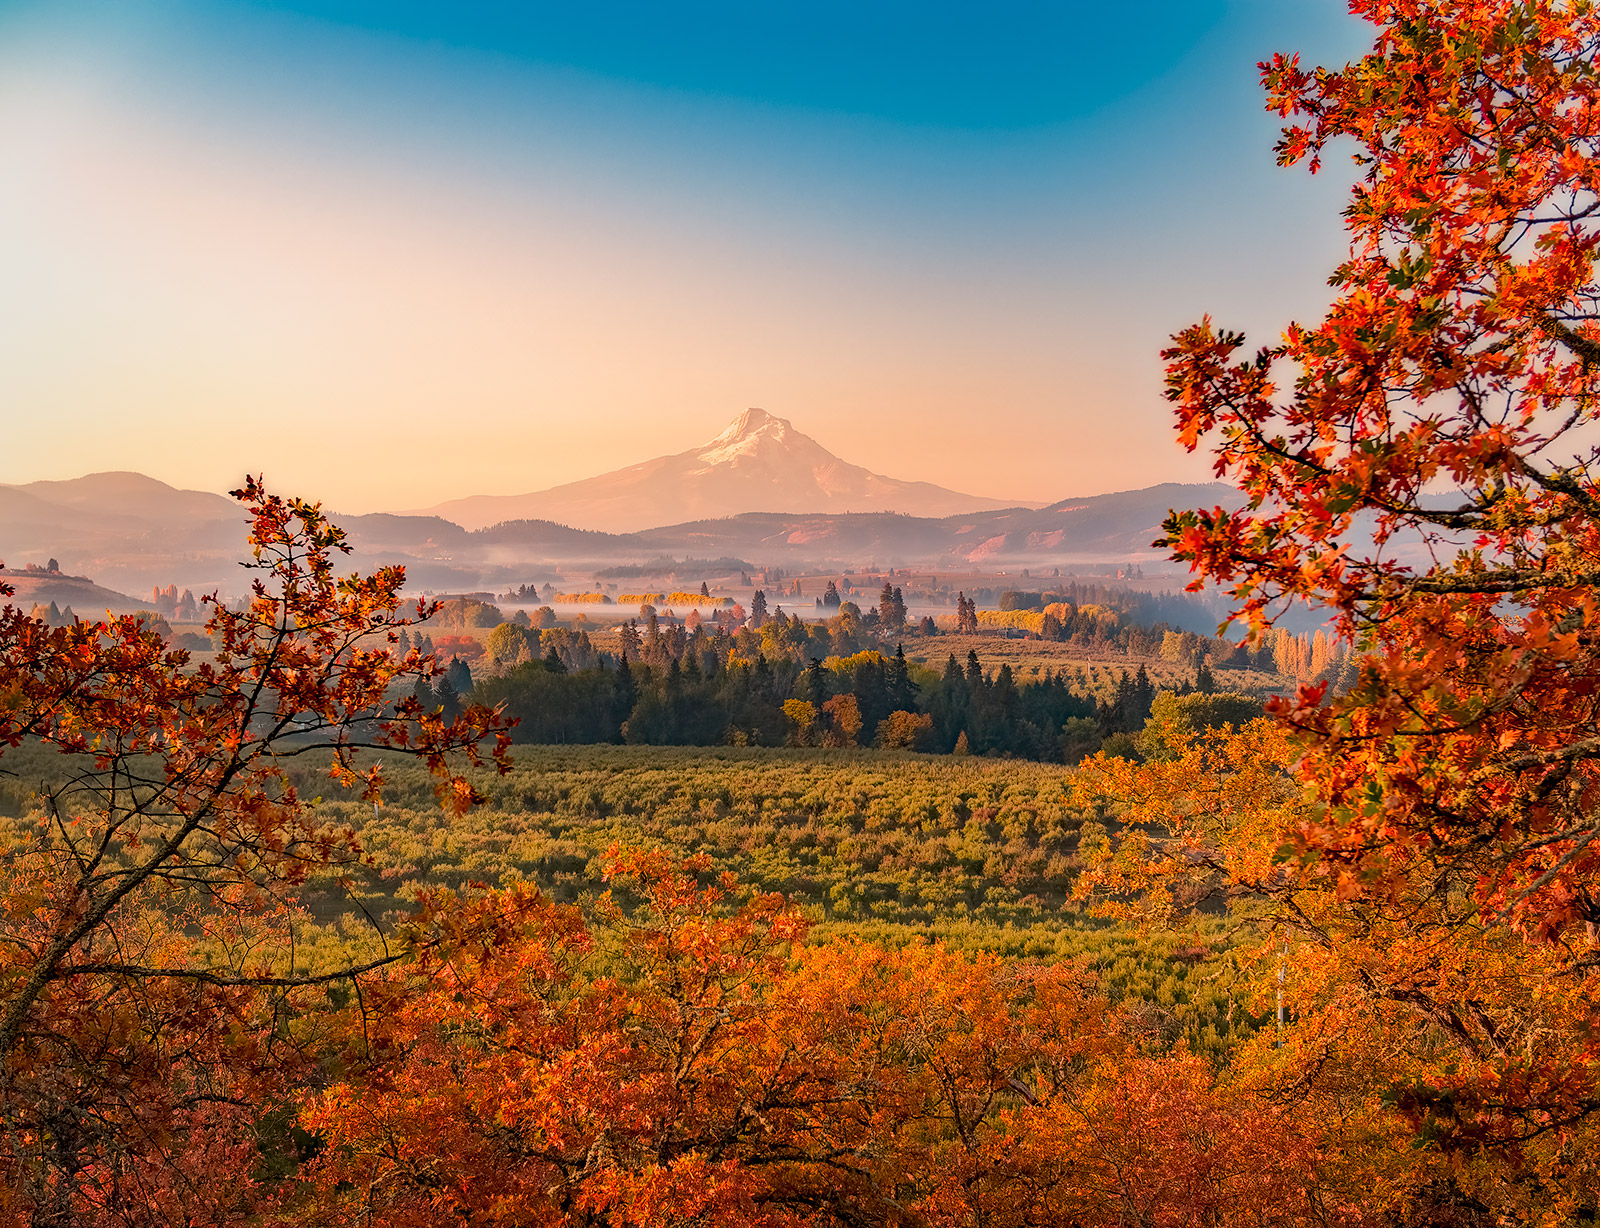 Sunrise at Mt Hood overlooking the vineyards and orchards